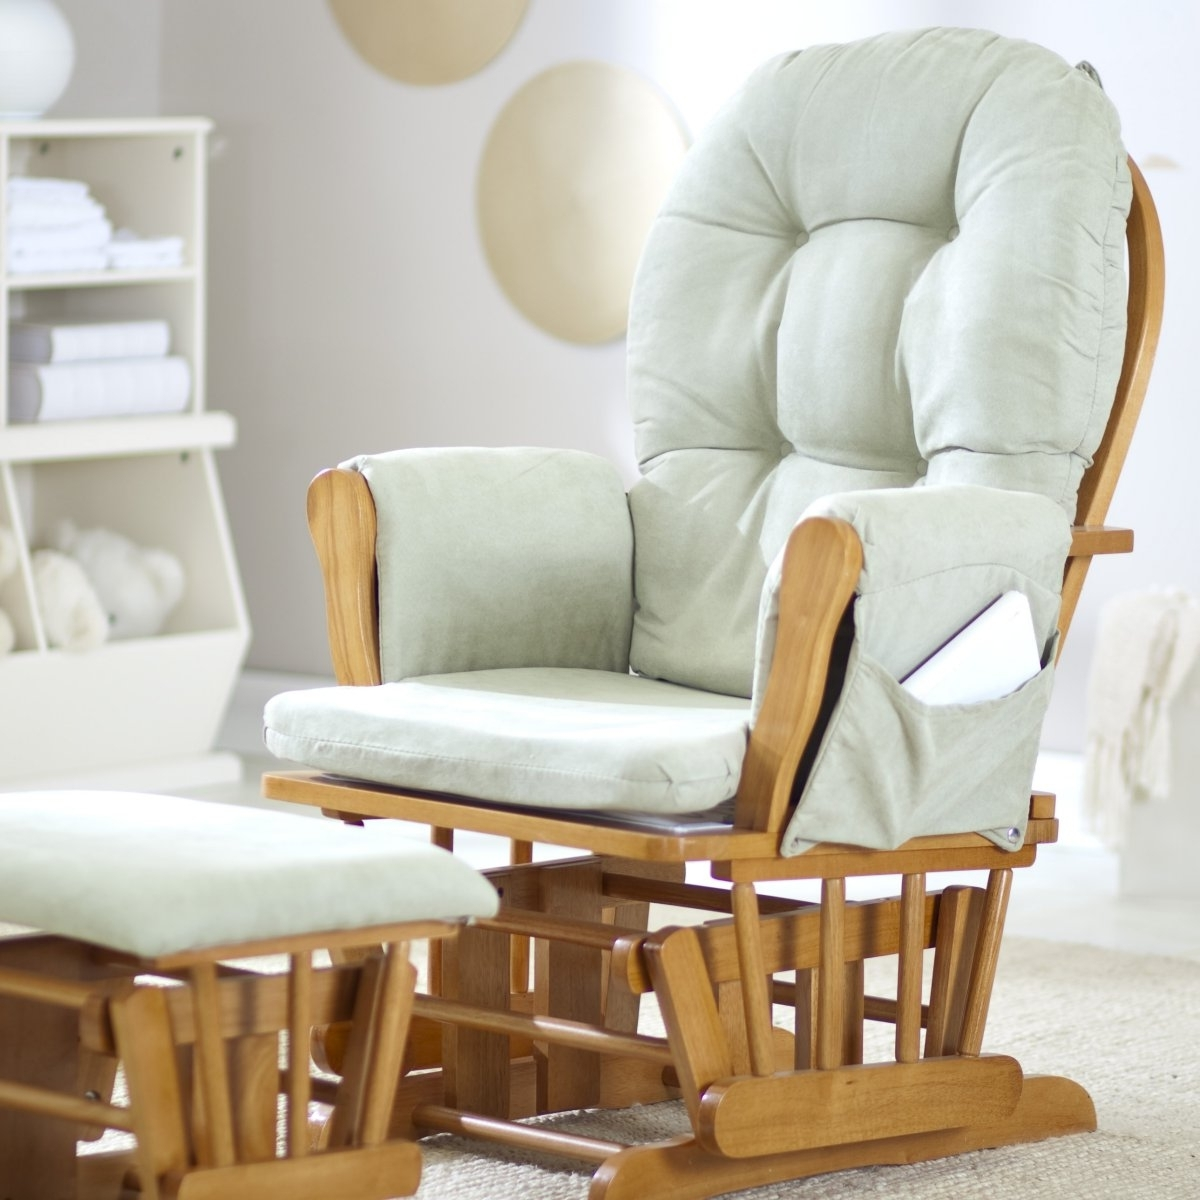 Rocking Chairs For Nursery For Latest Nursery Rocking Chair Target – Nursery Rocking Chair For Mom And (View 5 of 20)